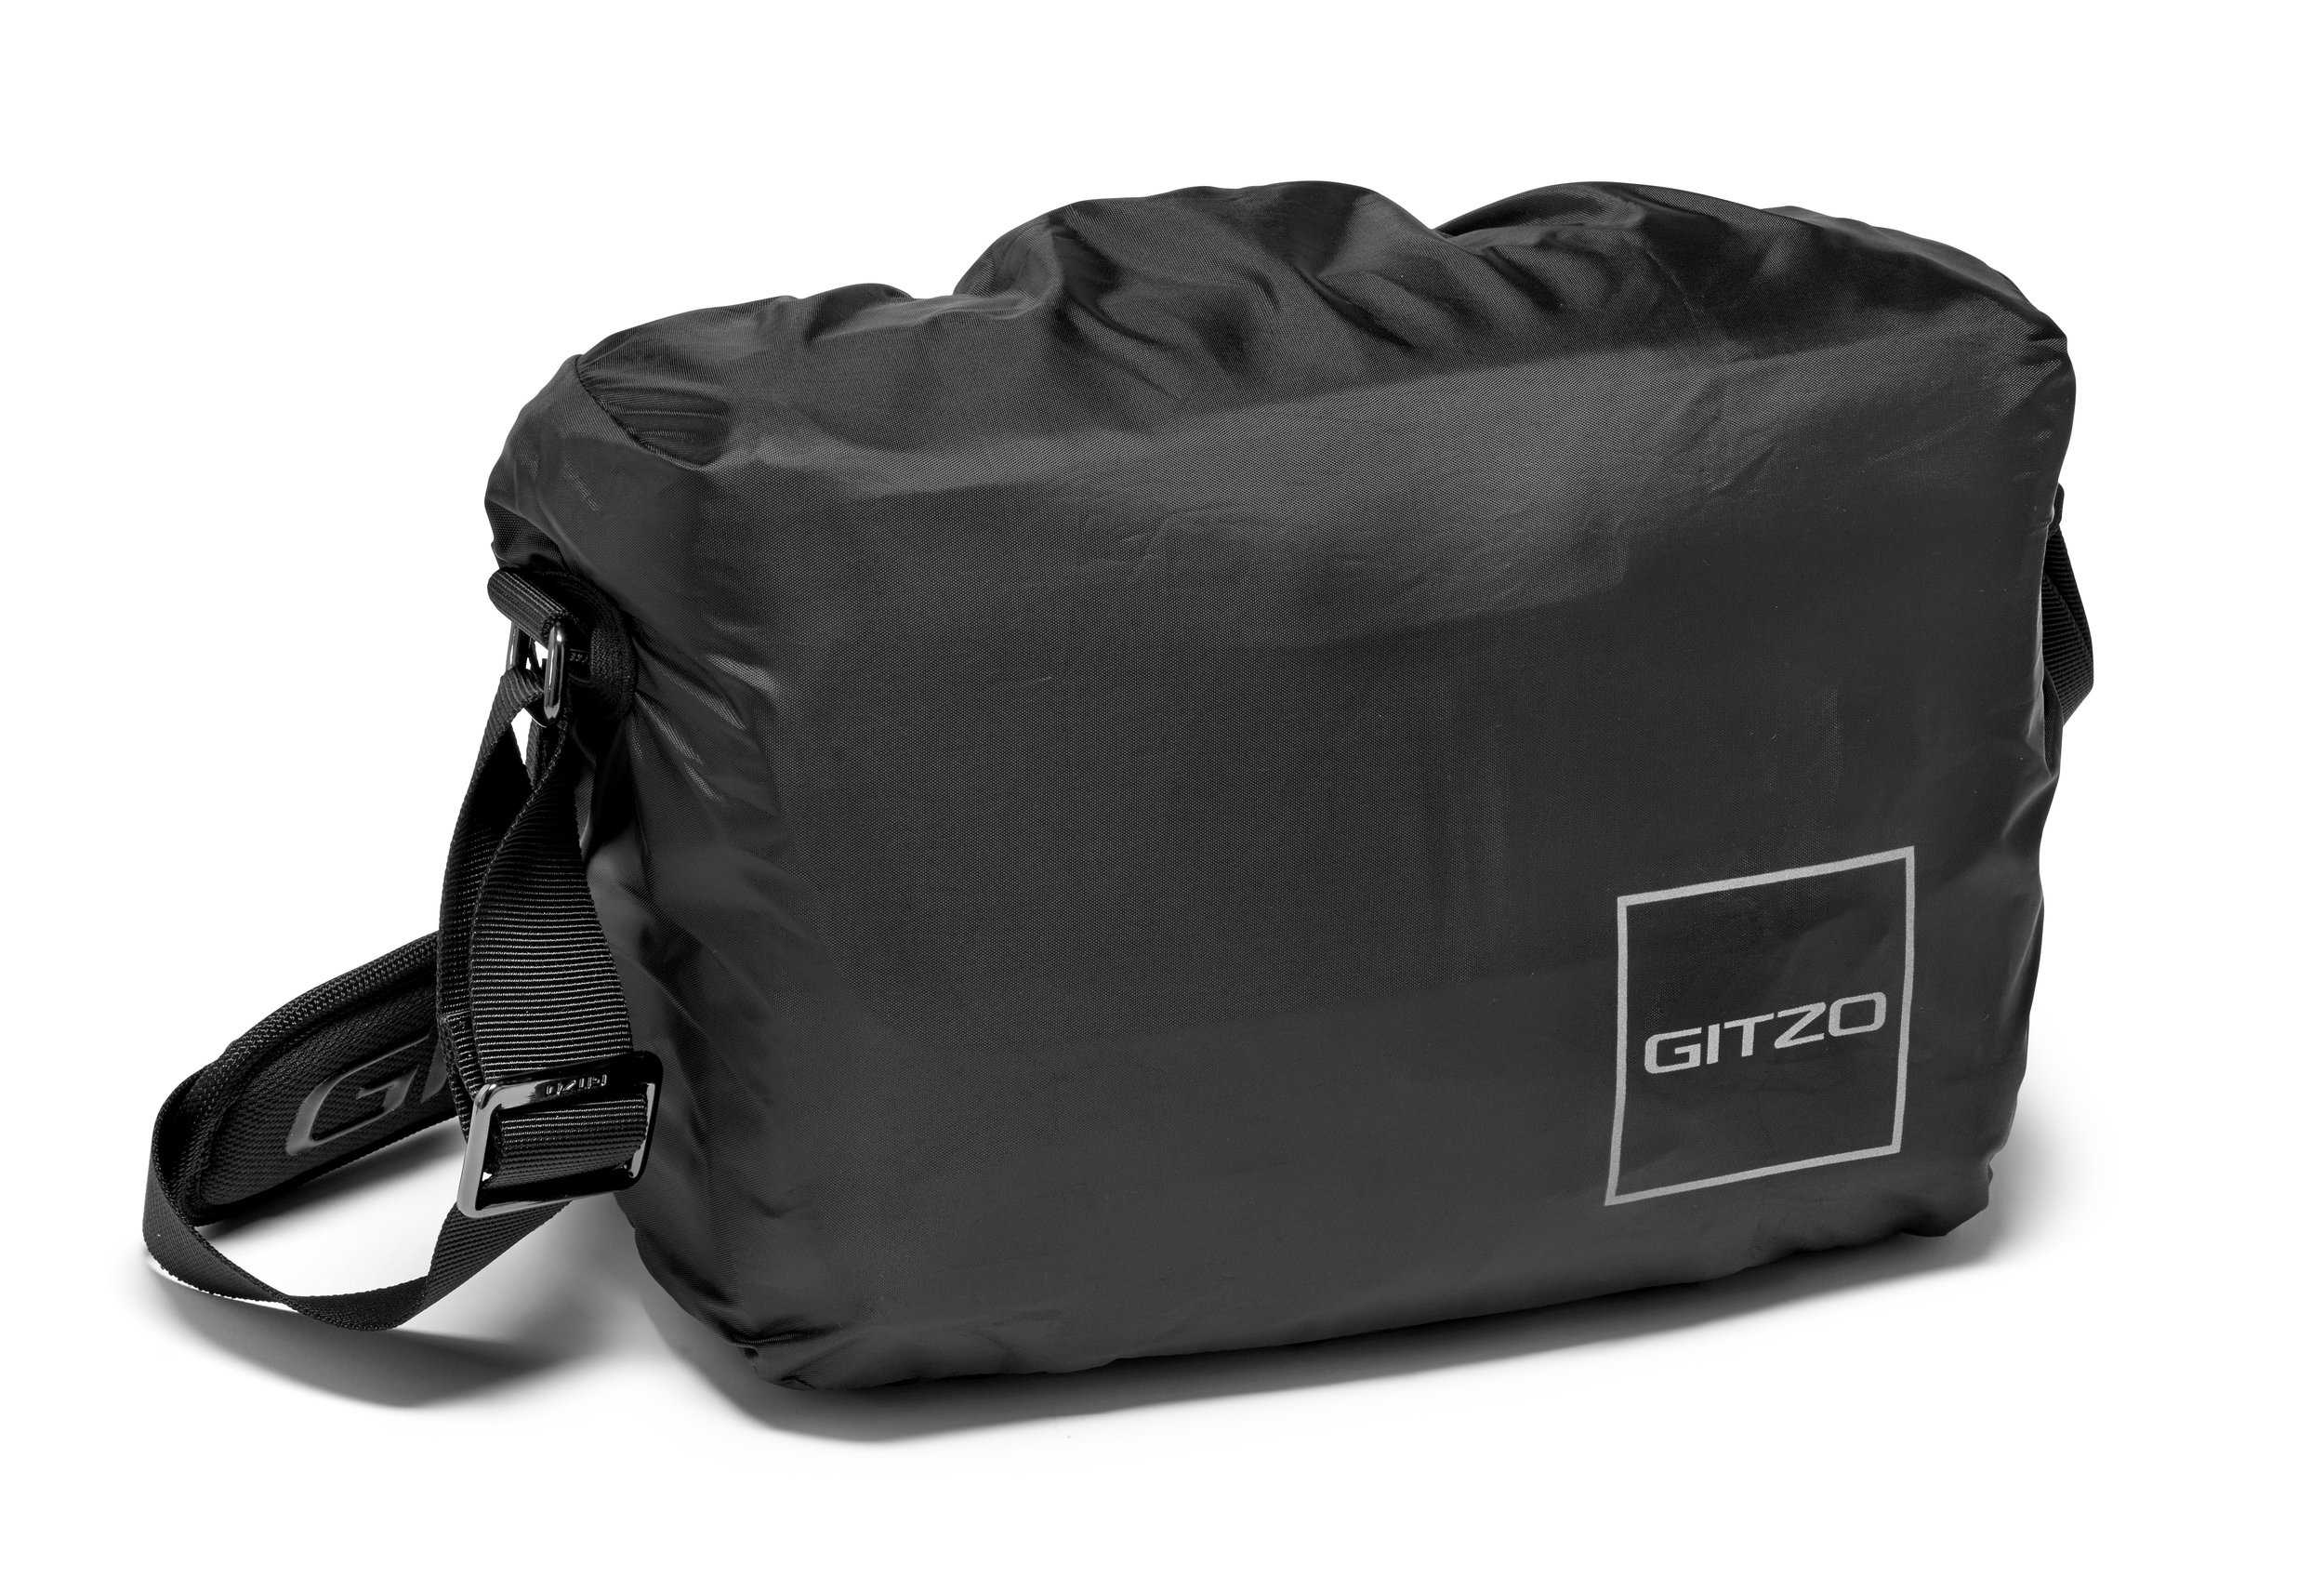 HR-GITZO_camera_bag_GCB100MS_raincover.jpg